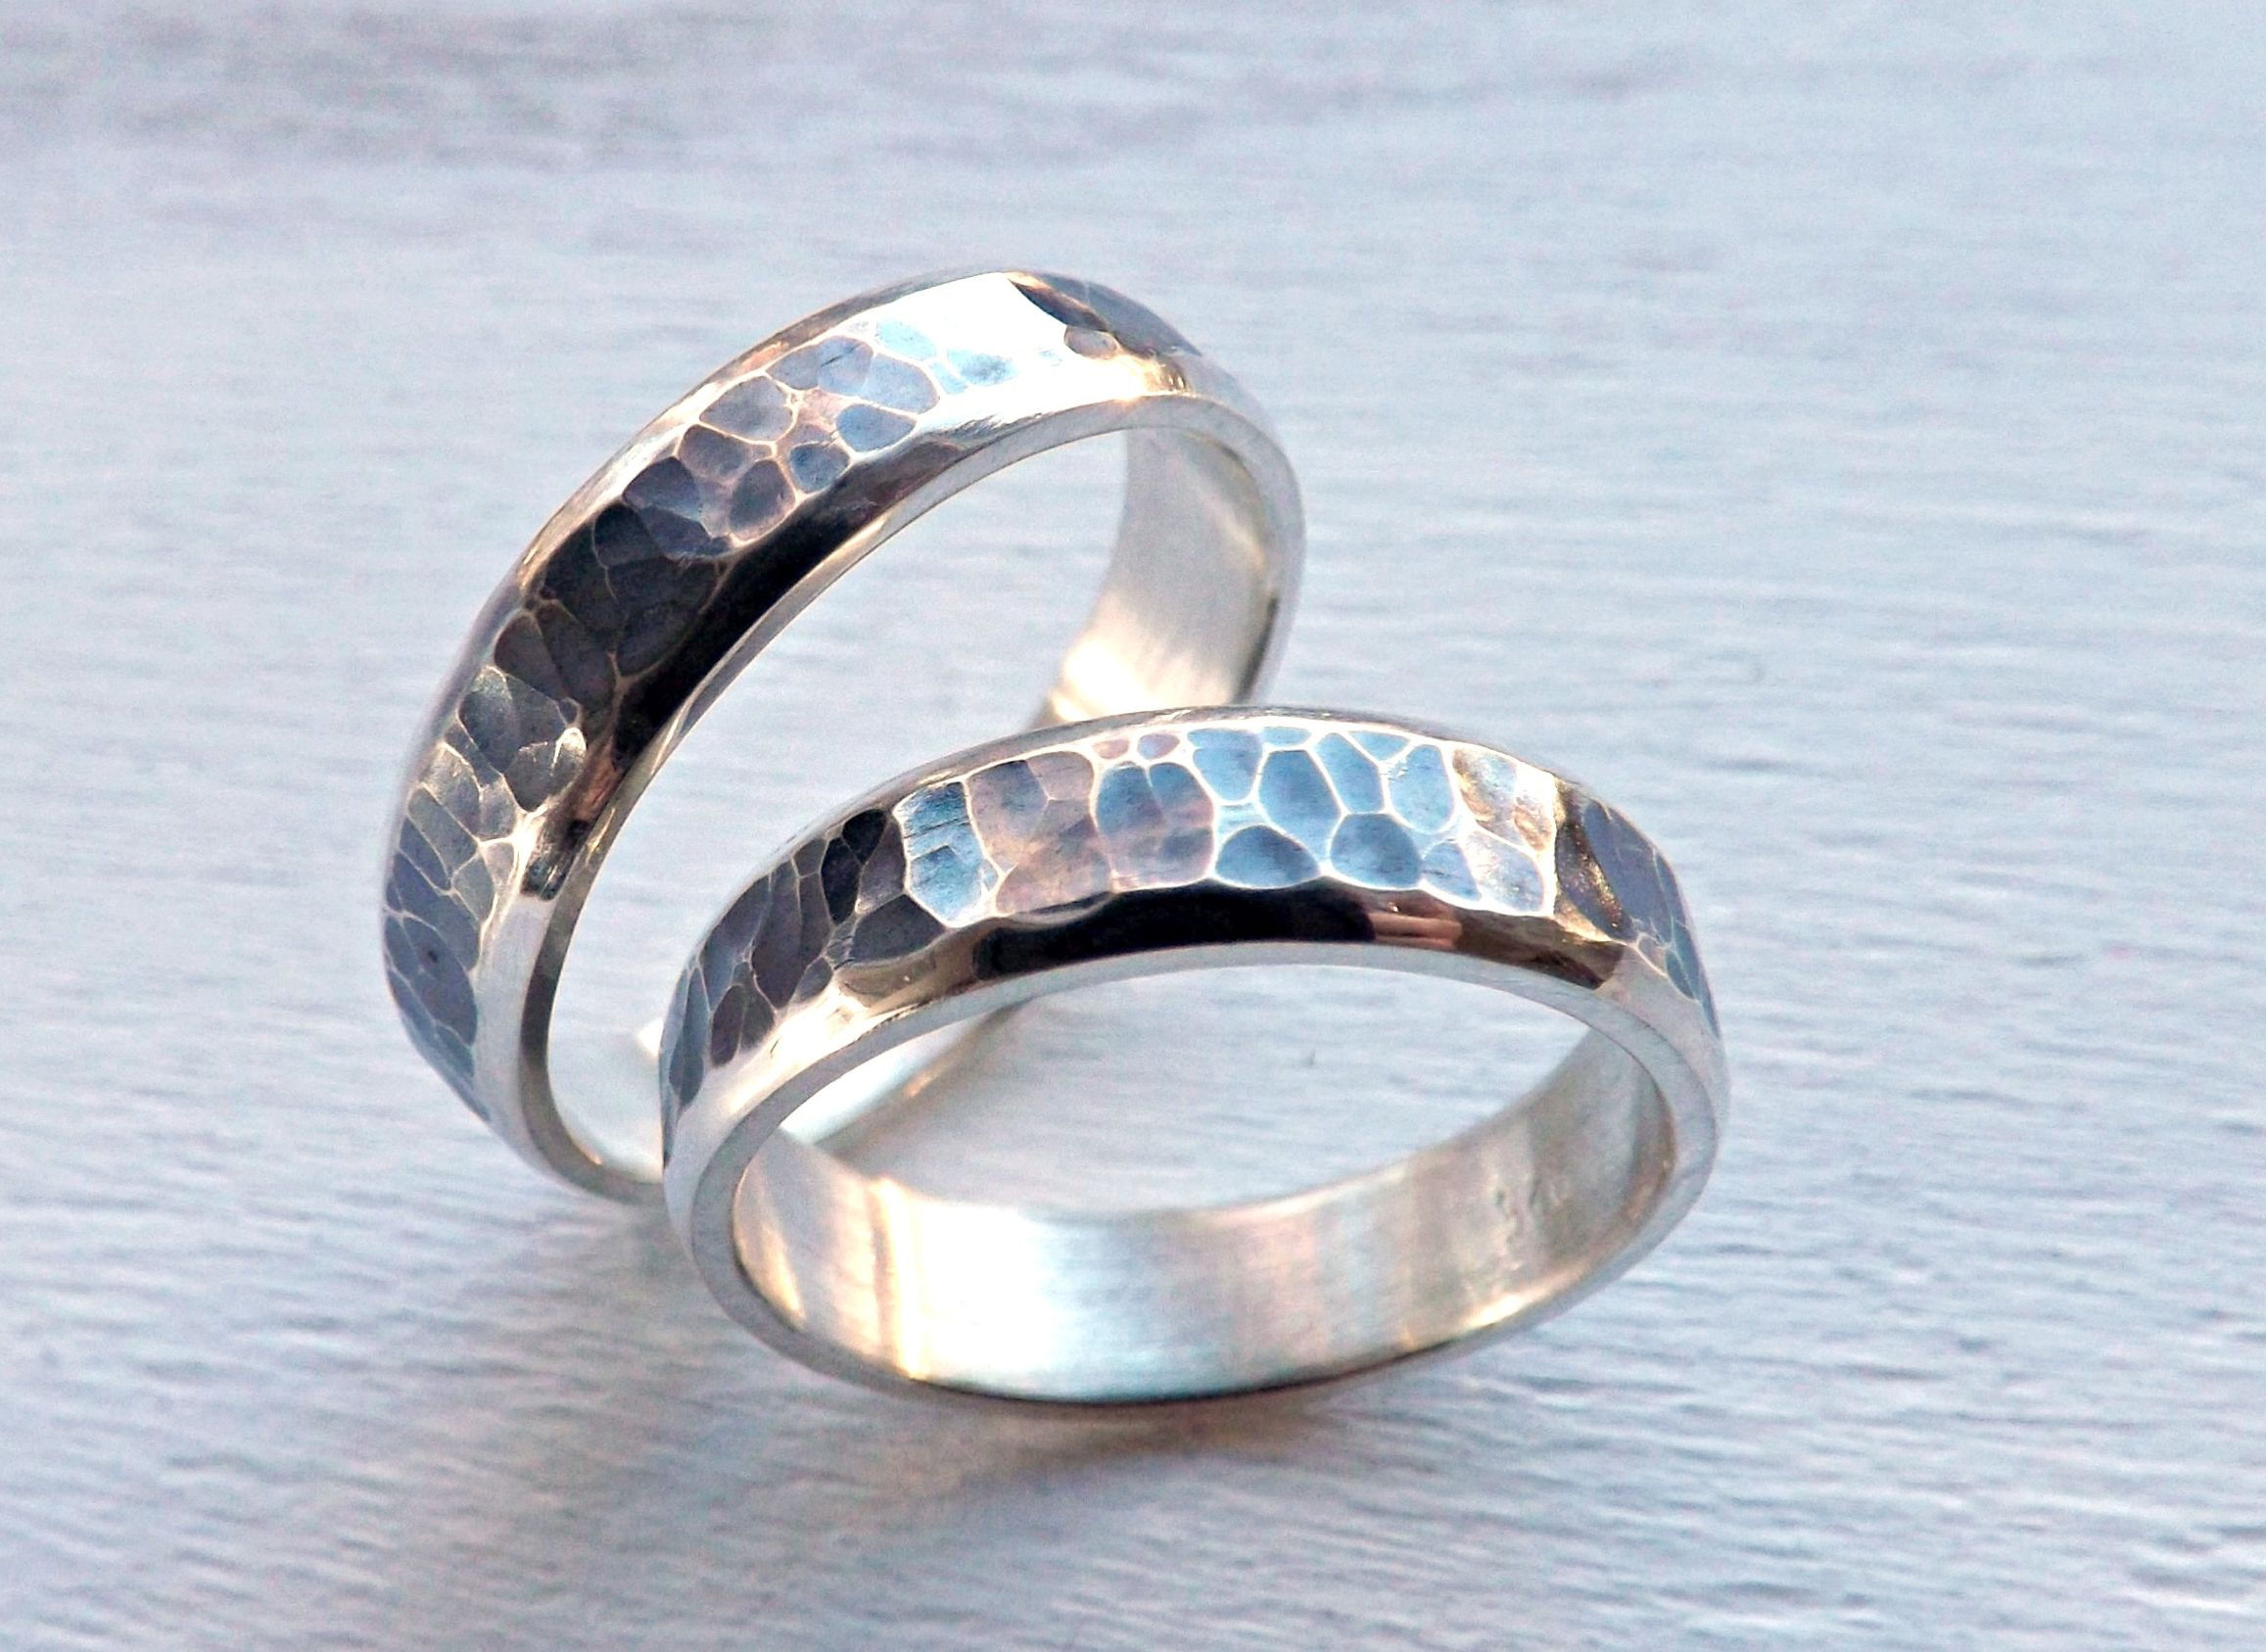 Buy a Handmade Rustic Wedding Ring Set Silver Matching Promise